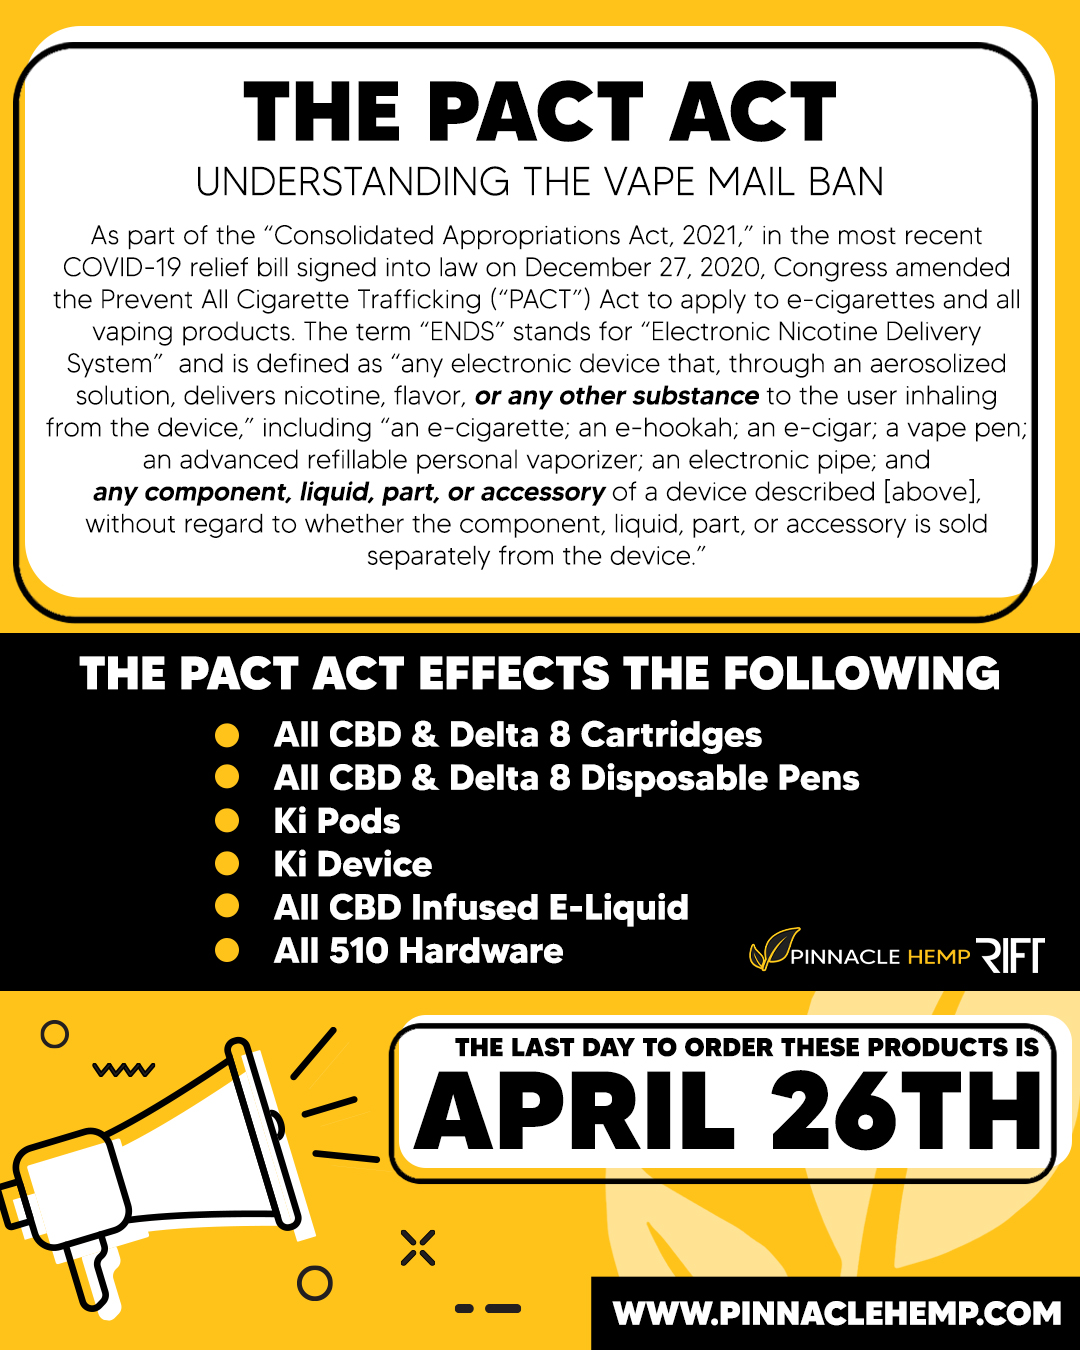 PACT Act Information